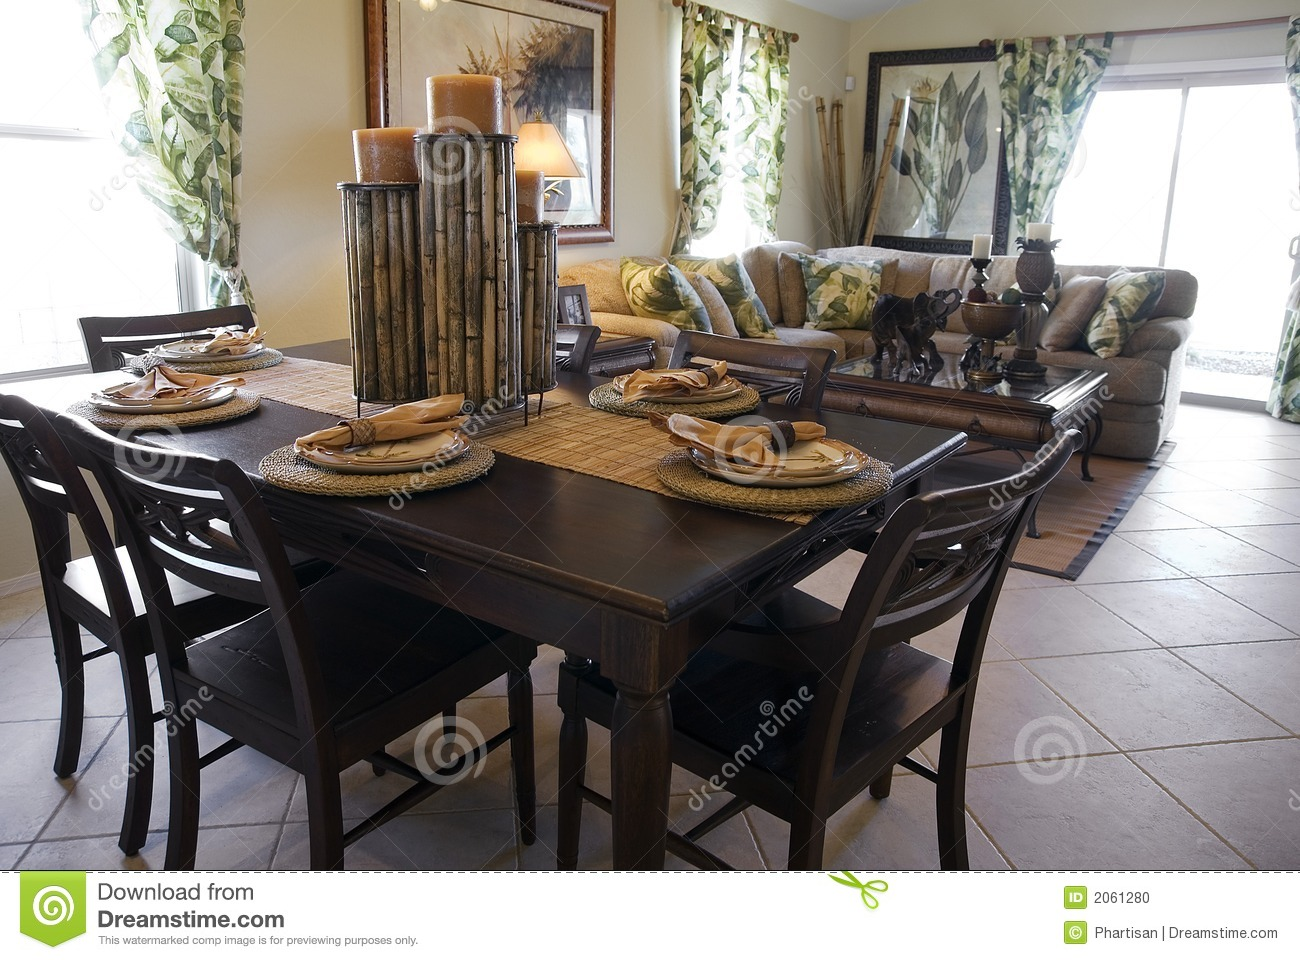 Model home interior design stock photo image of table 2061280 for Interior design model homes pictures